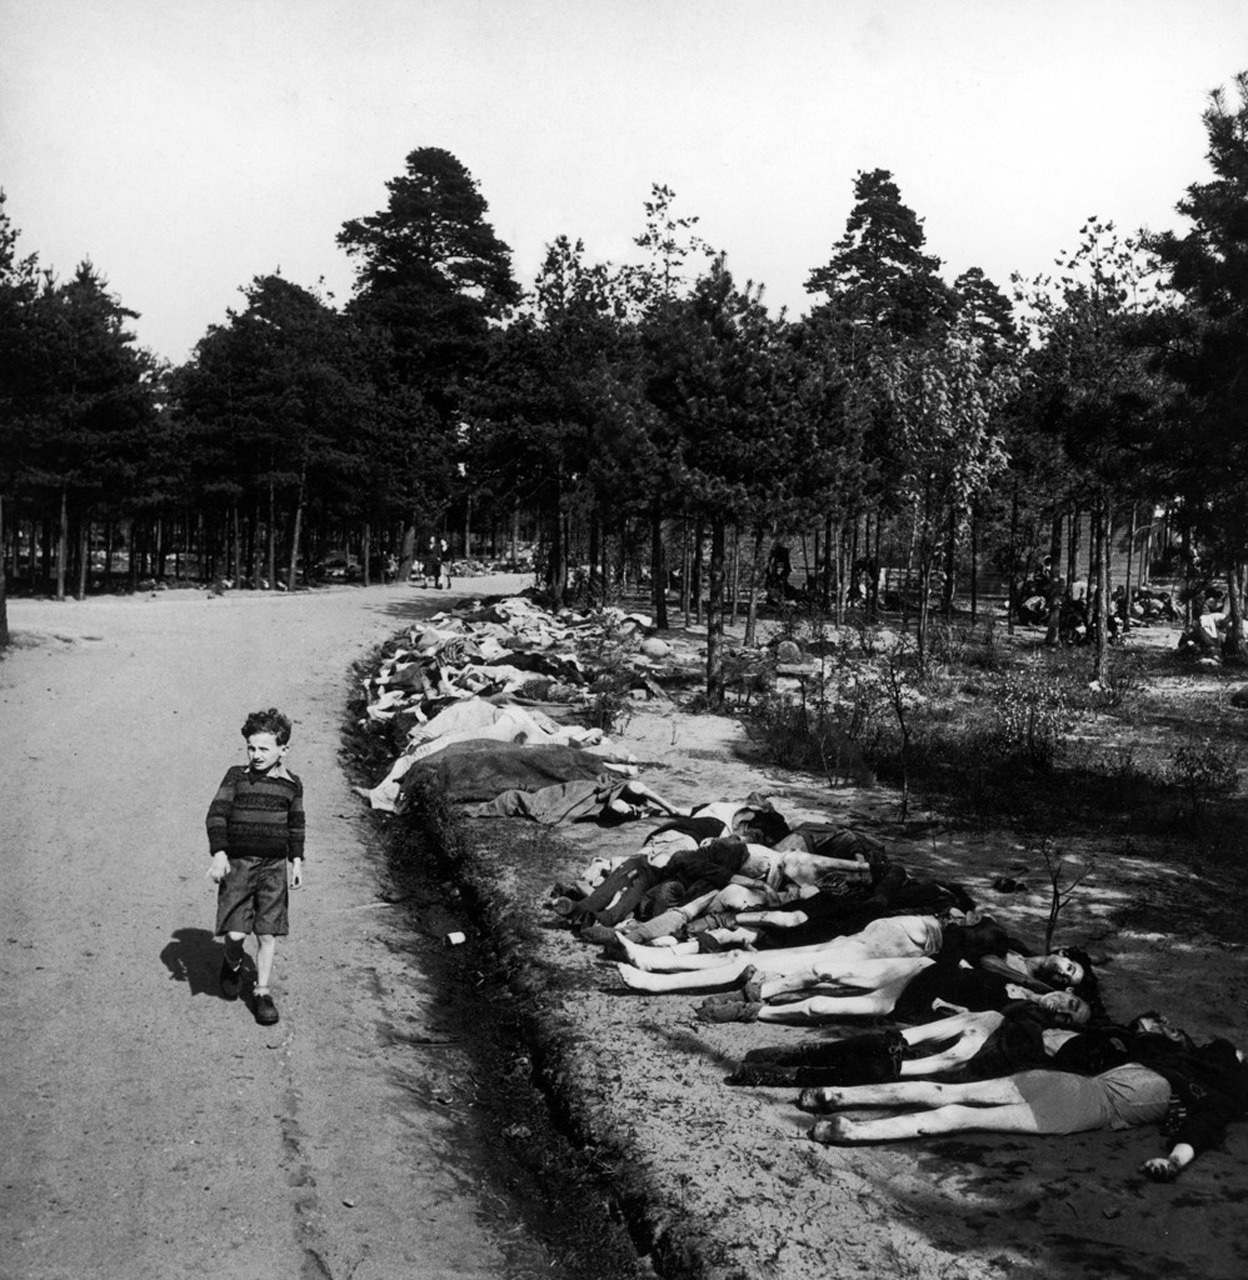 bag-of-dirt:  A German boy walks down a dirt road lined with the corpses of hundreds of concentration camp inmates who died of starvation and disease at Bergen-Belsen in northwestern Germany. 20 April 1945